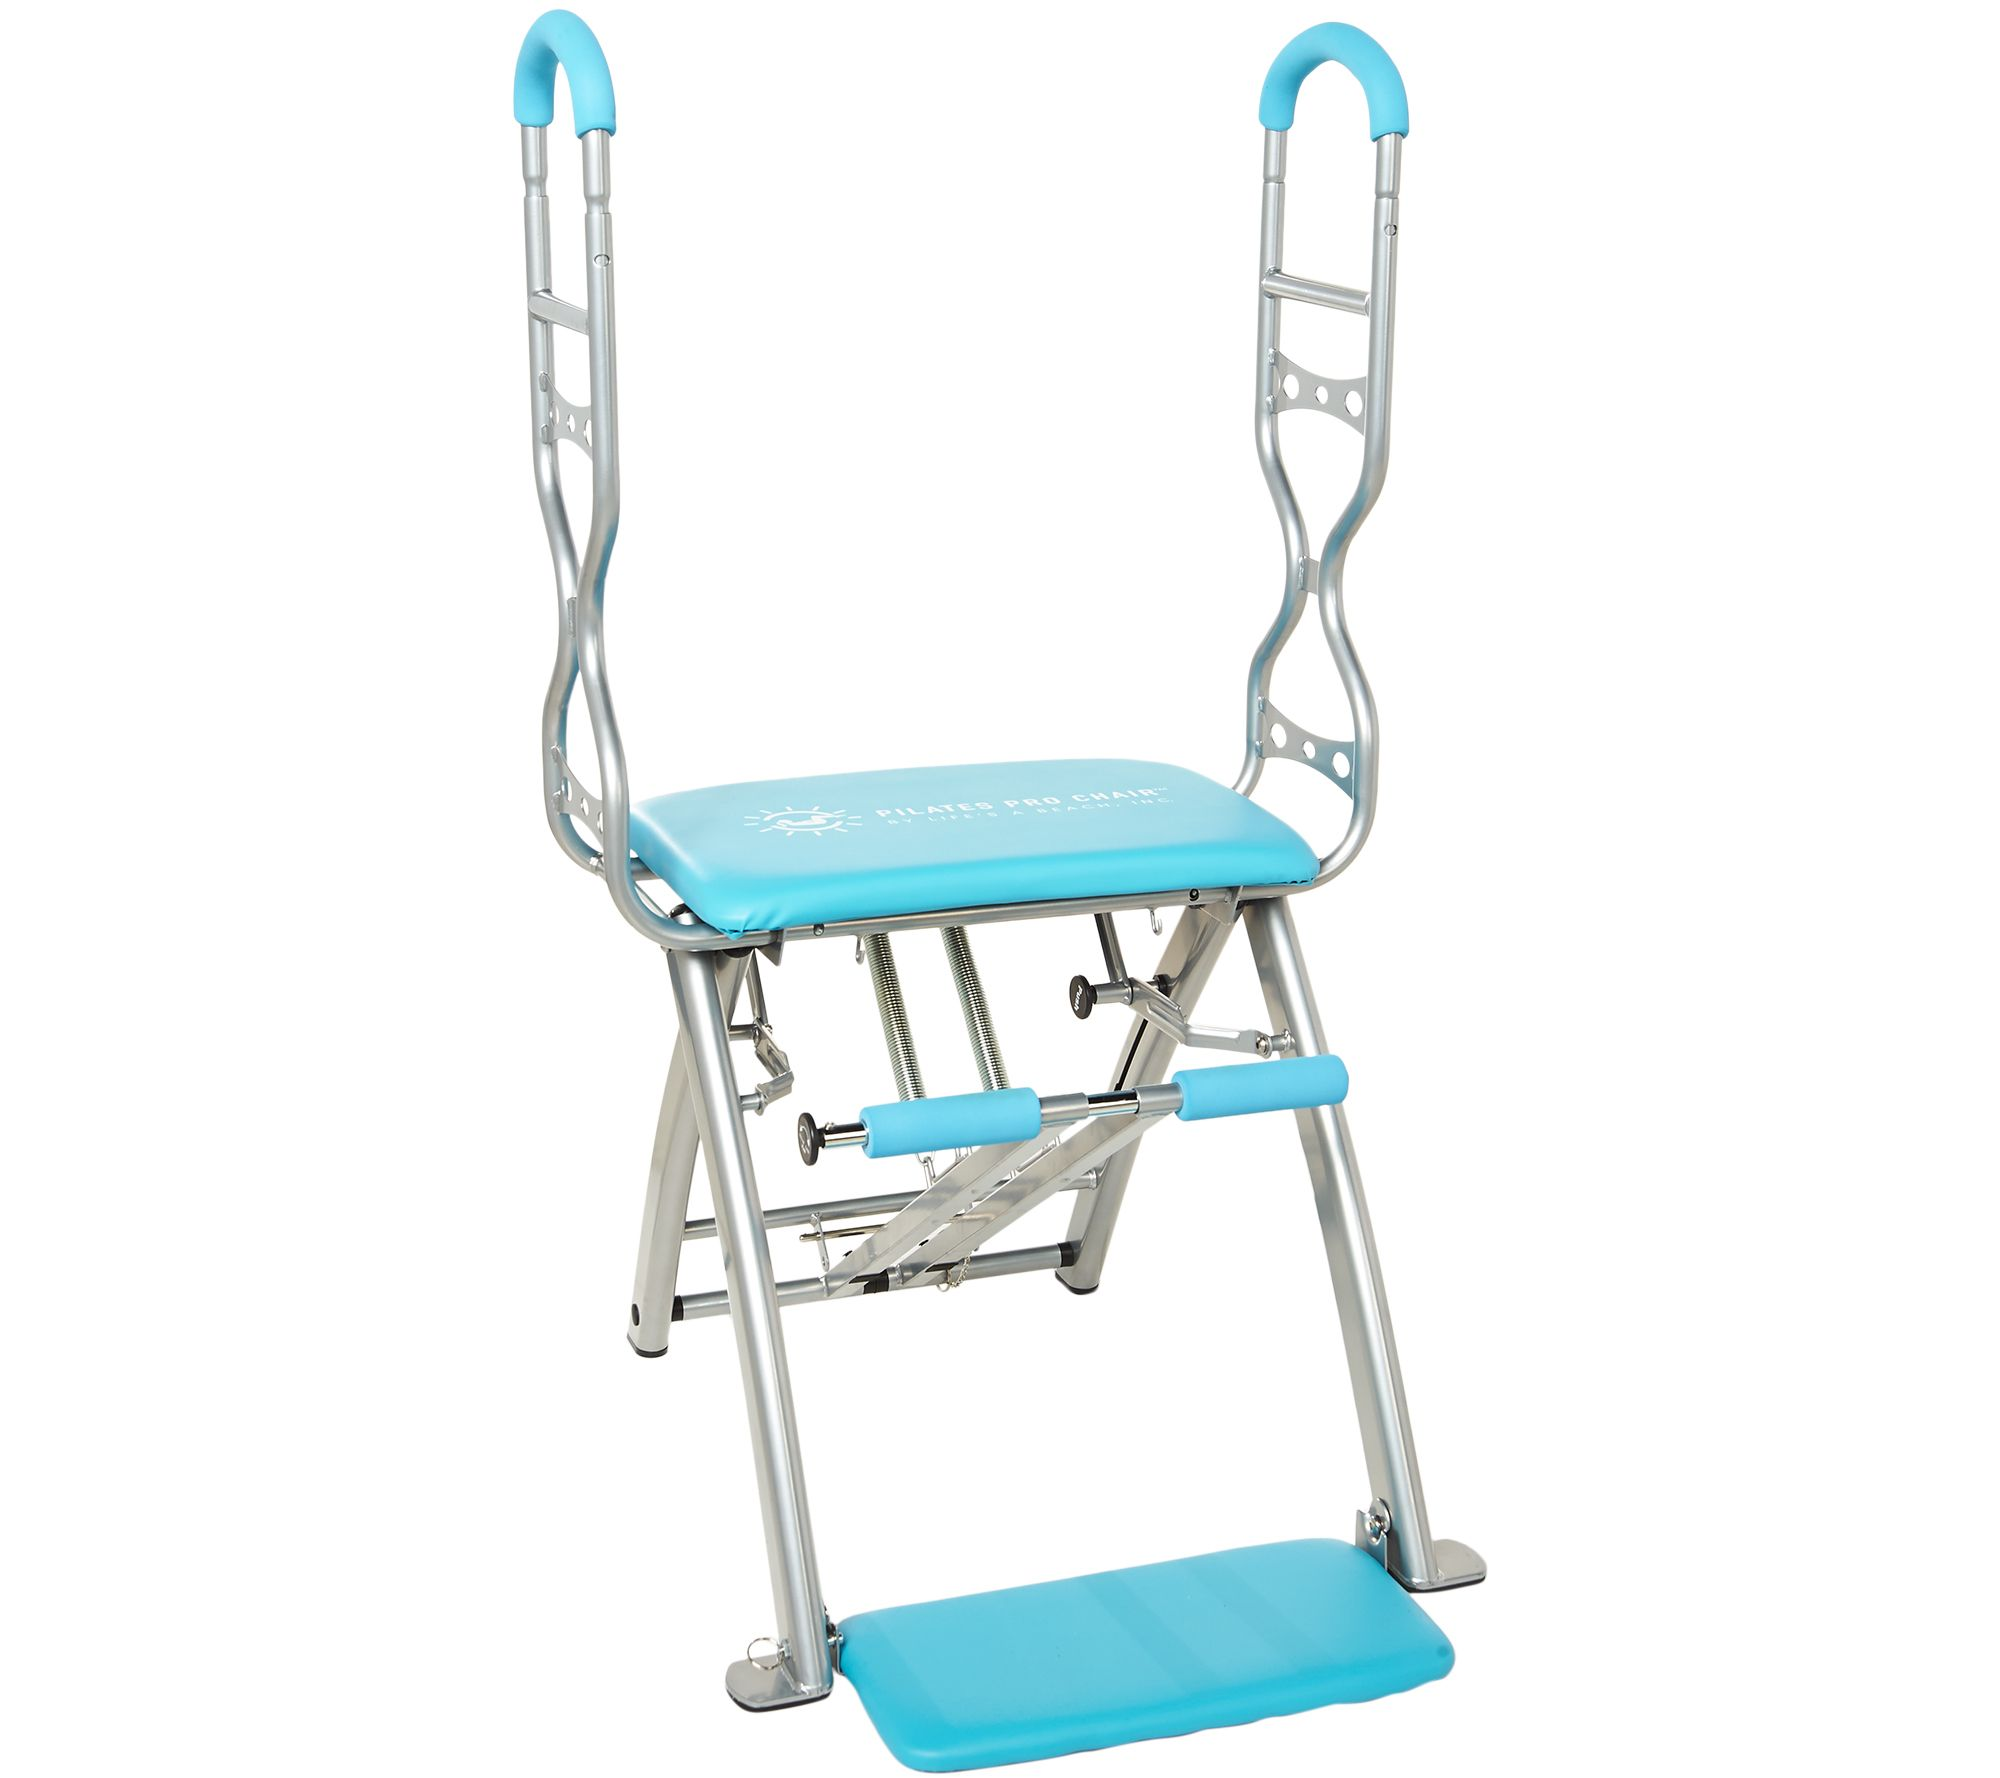 Pilates Chair Dvds Lifes Beach: Pilates PRO Chair Max With Sculpting Handles By Life's A